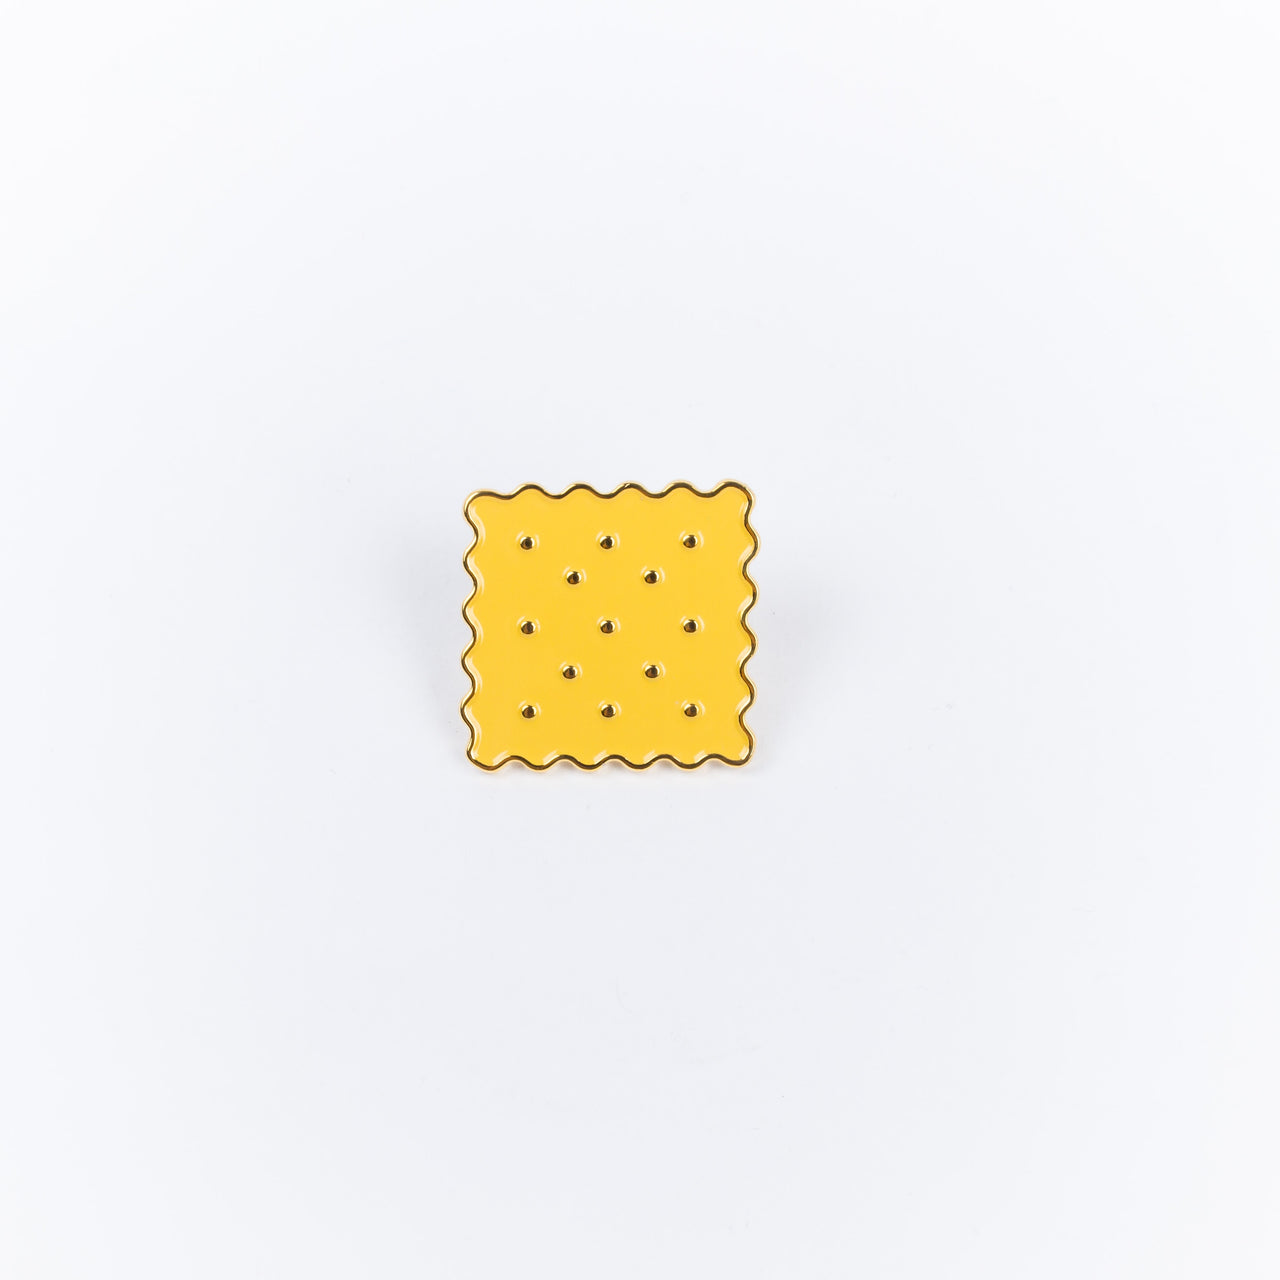 Enamel Pin - Saltine